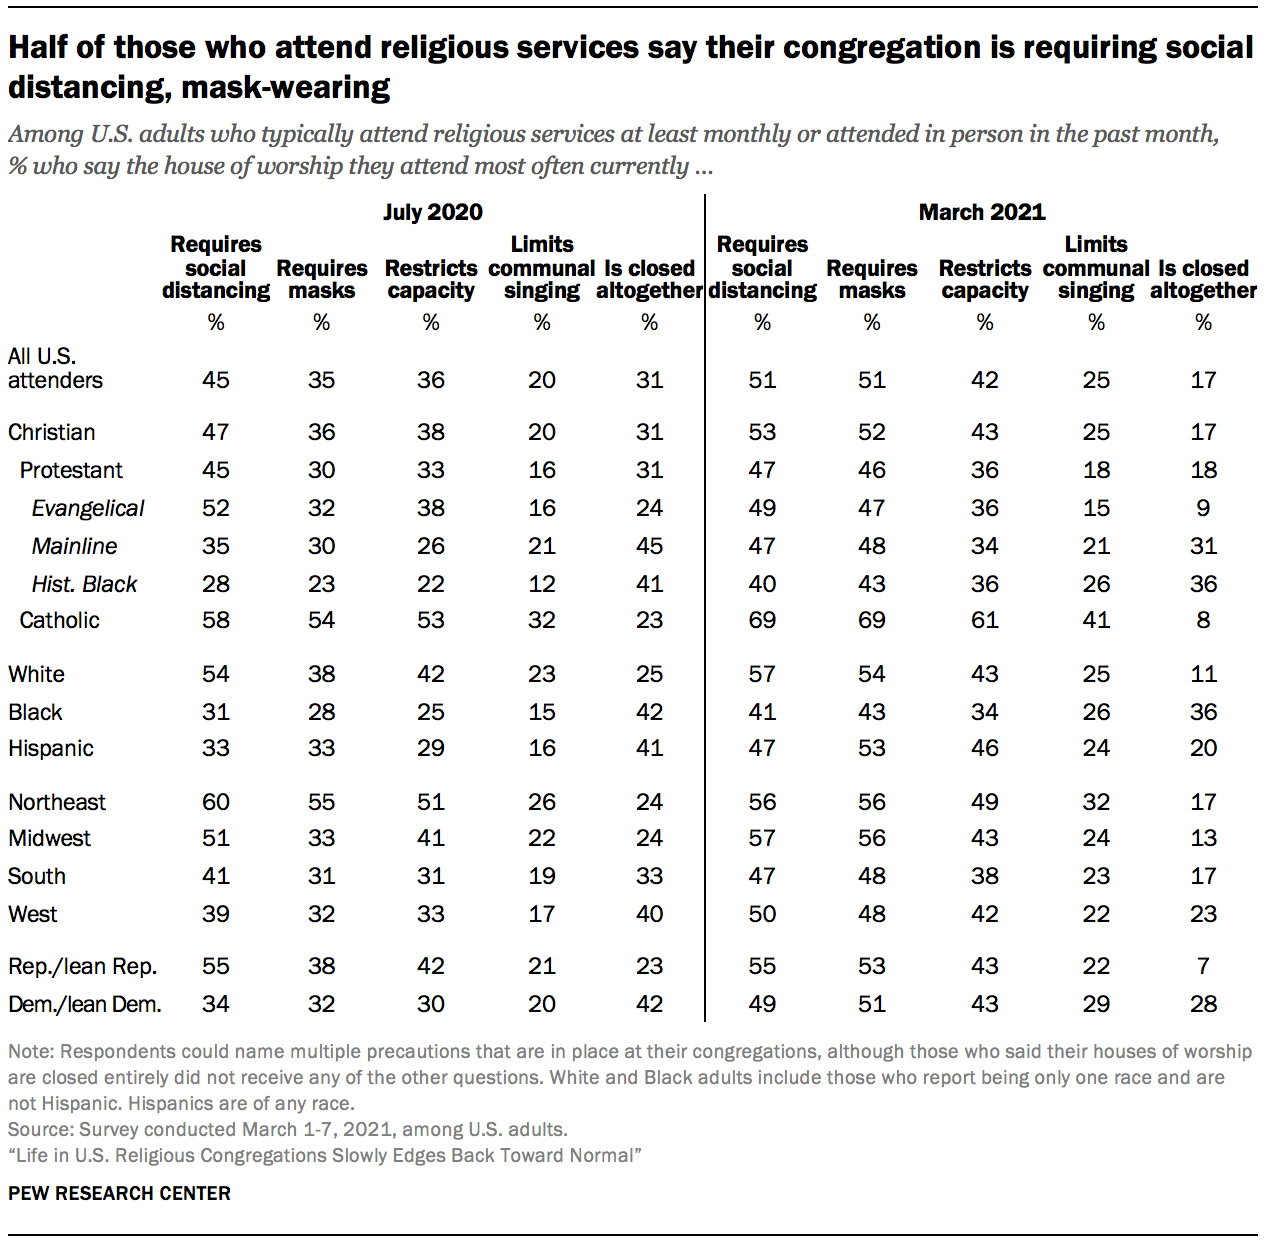 Half of those who attend religious services say their congregation is requiring social distancing, mask-wearing